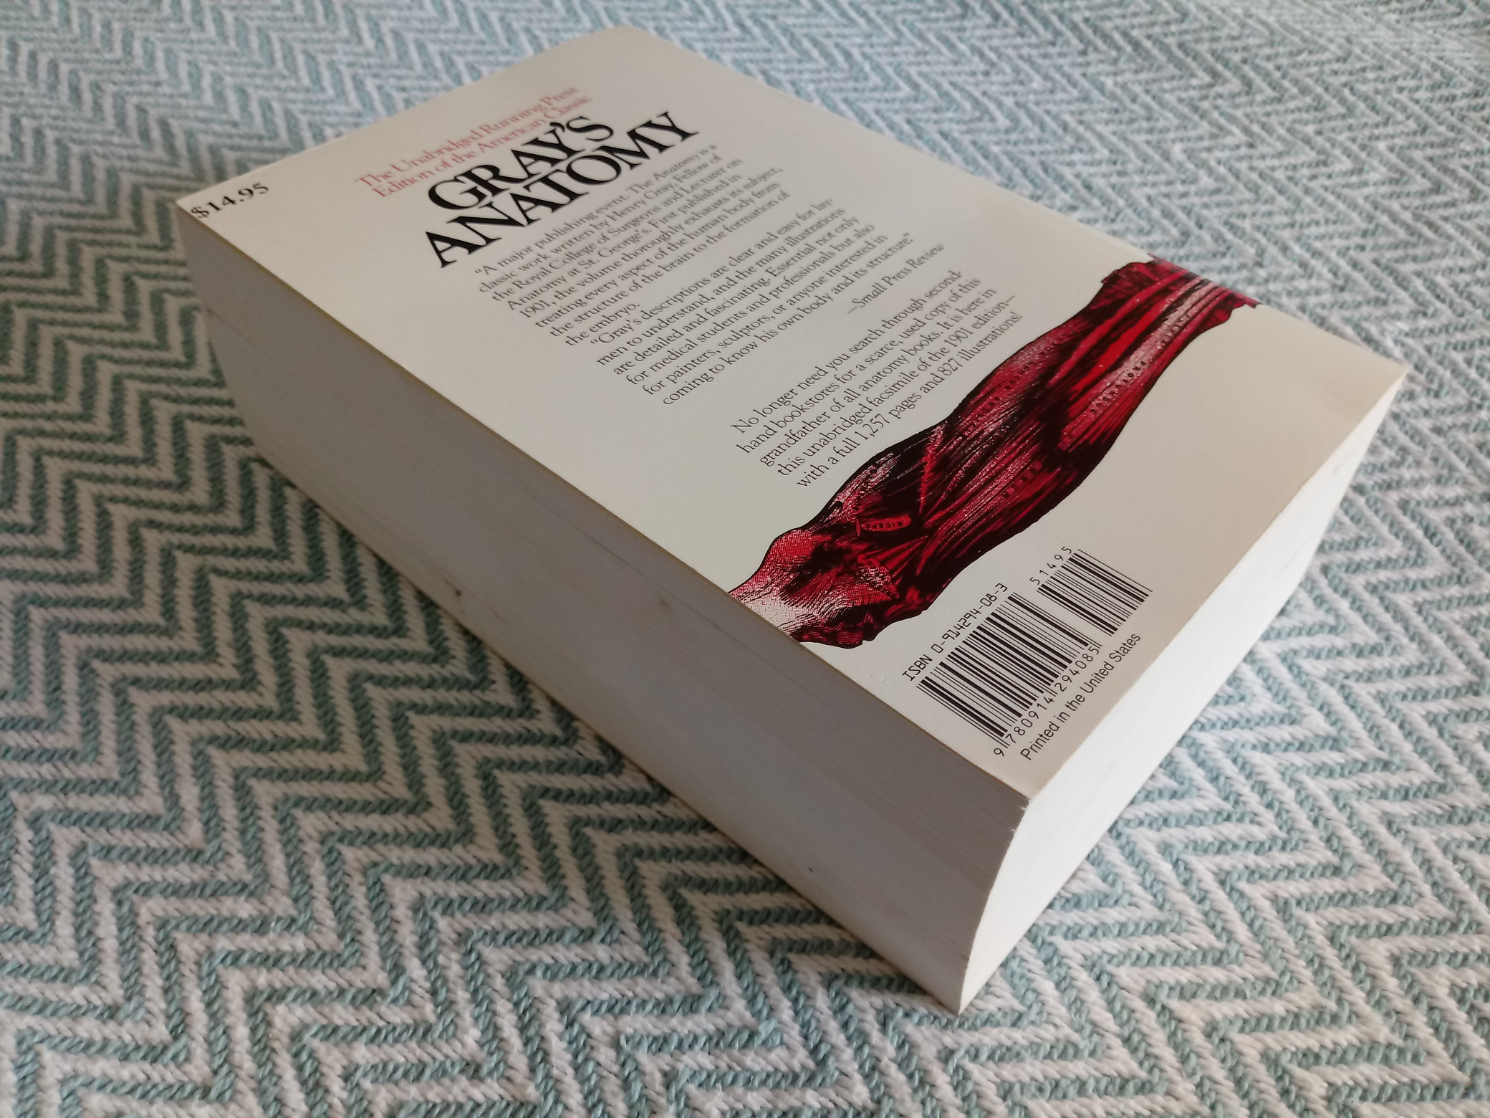 Gray's Anatomy Unabridged Running Press Edition paperback book. Published 1974. 1257 pages. Some